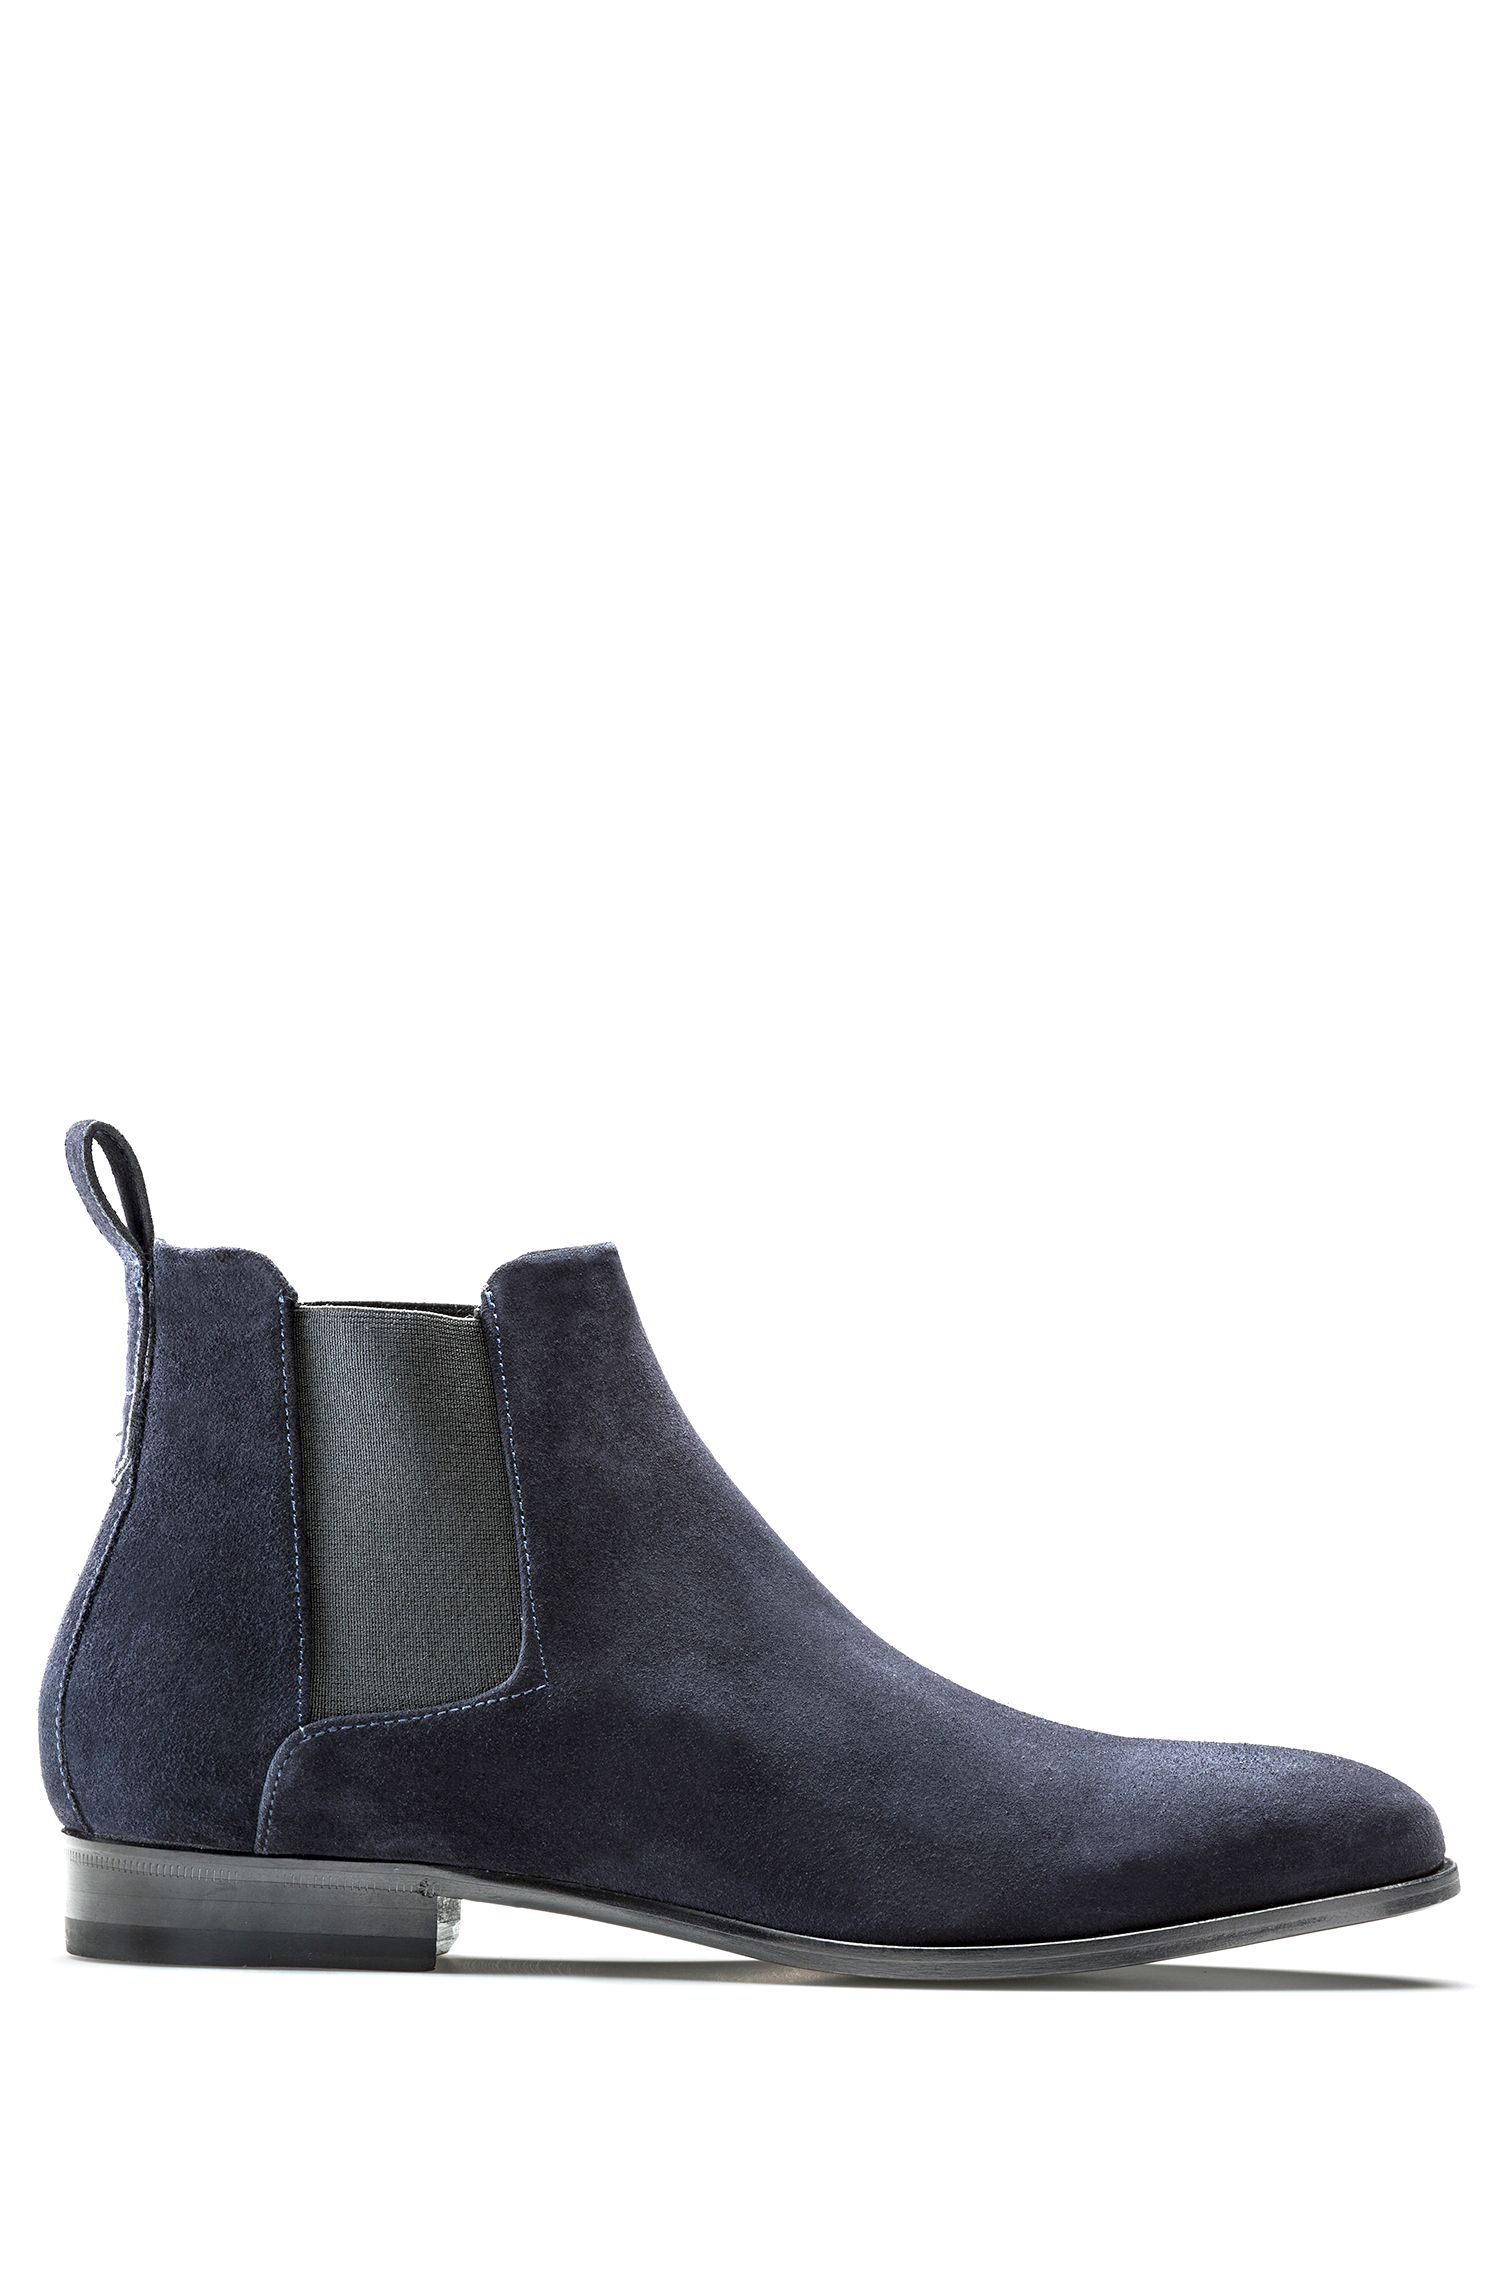 Chelsea boots in soft leather